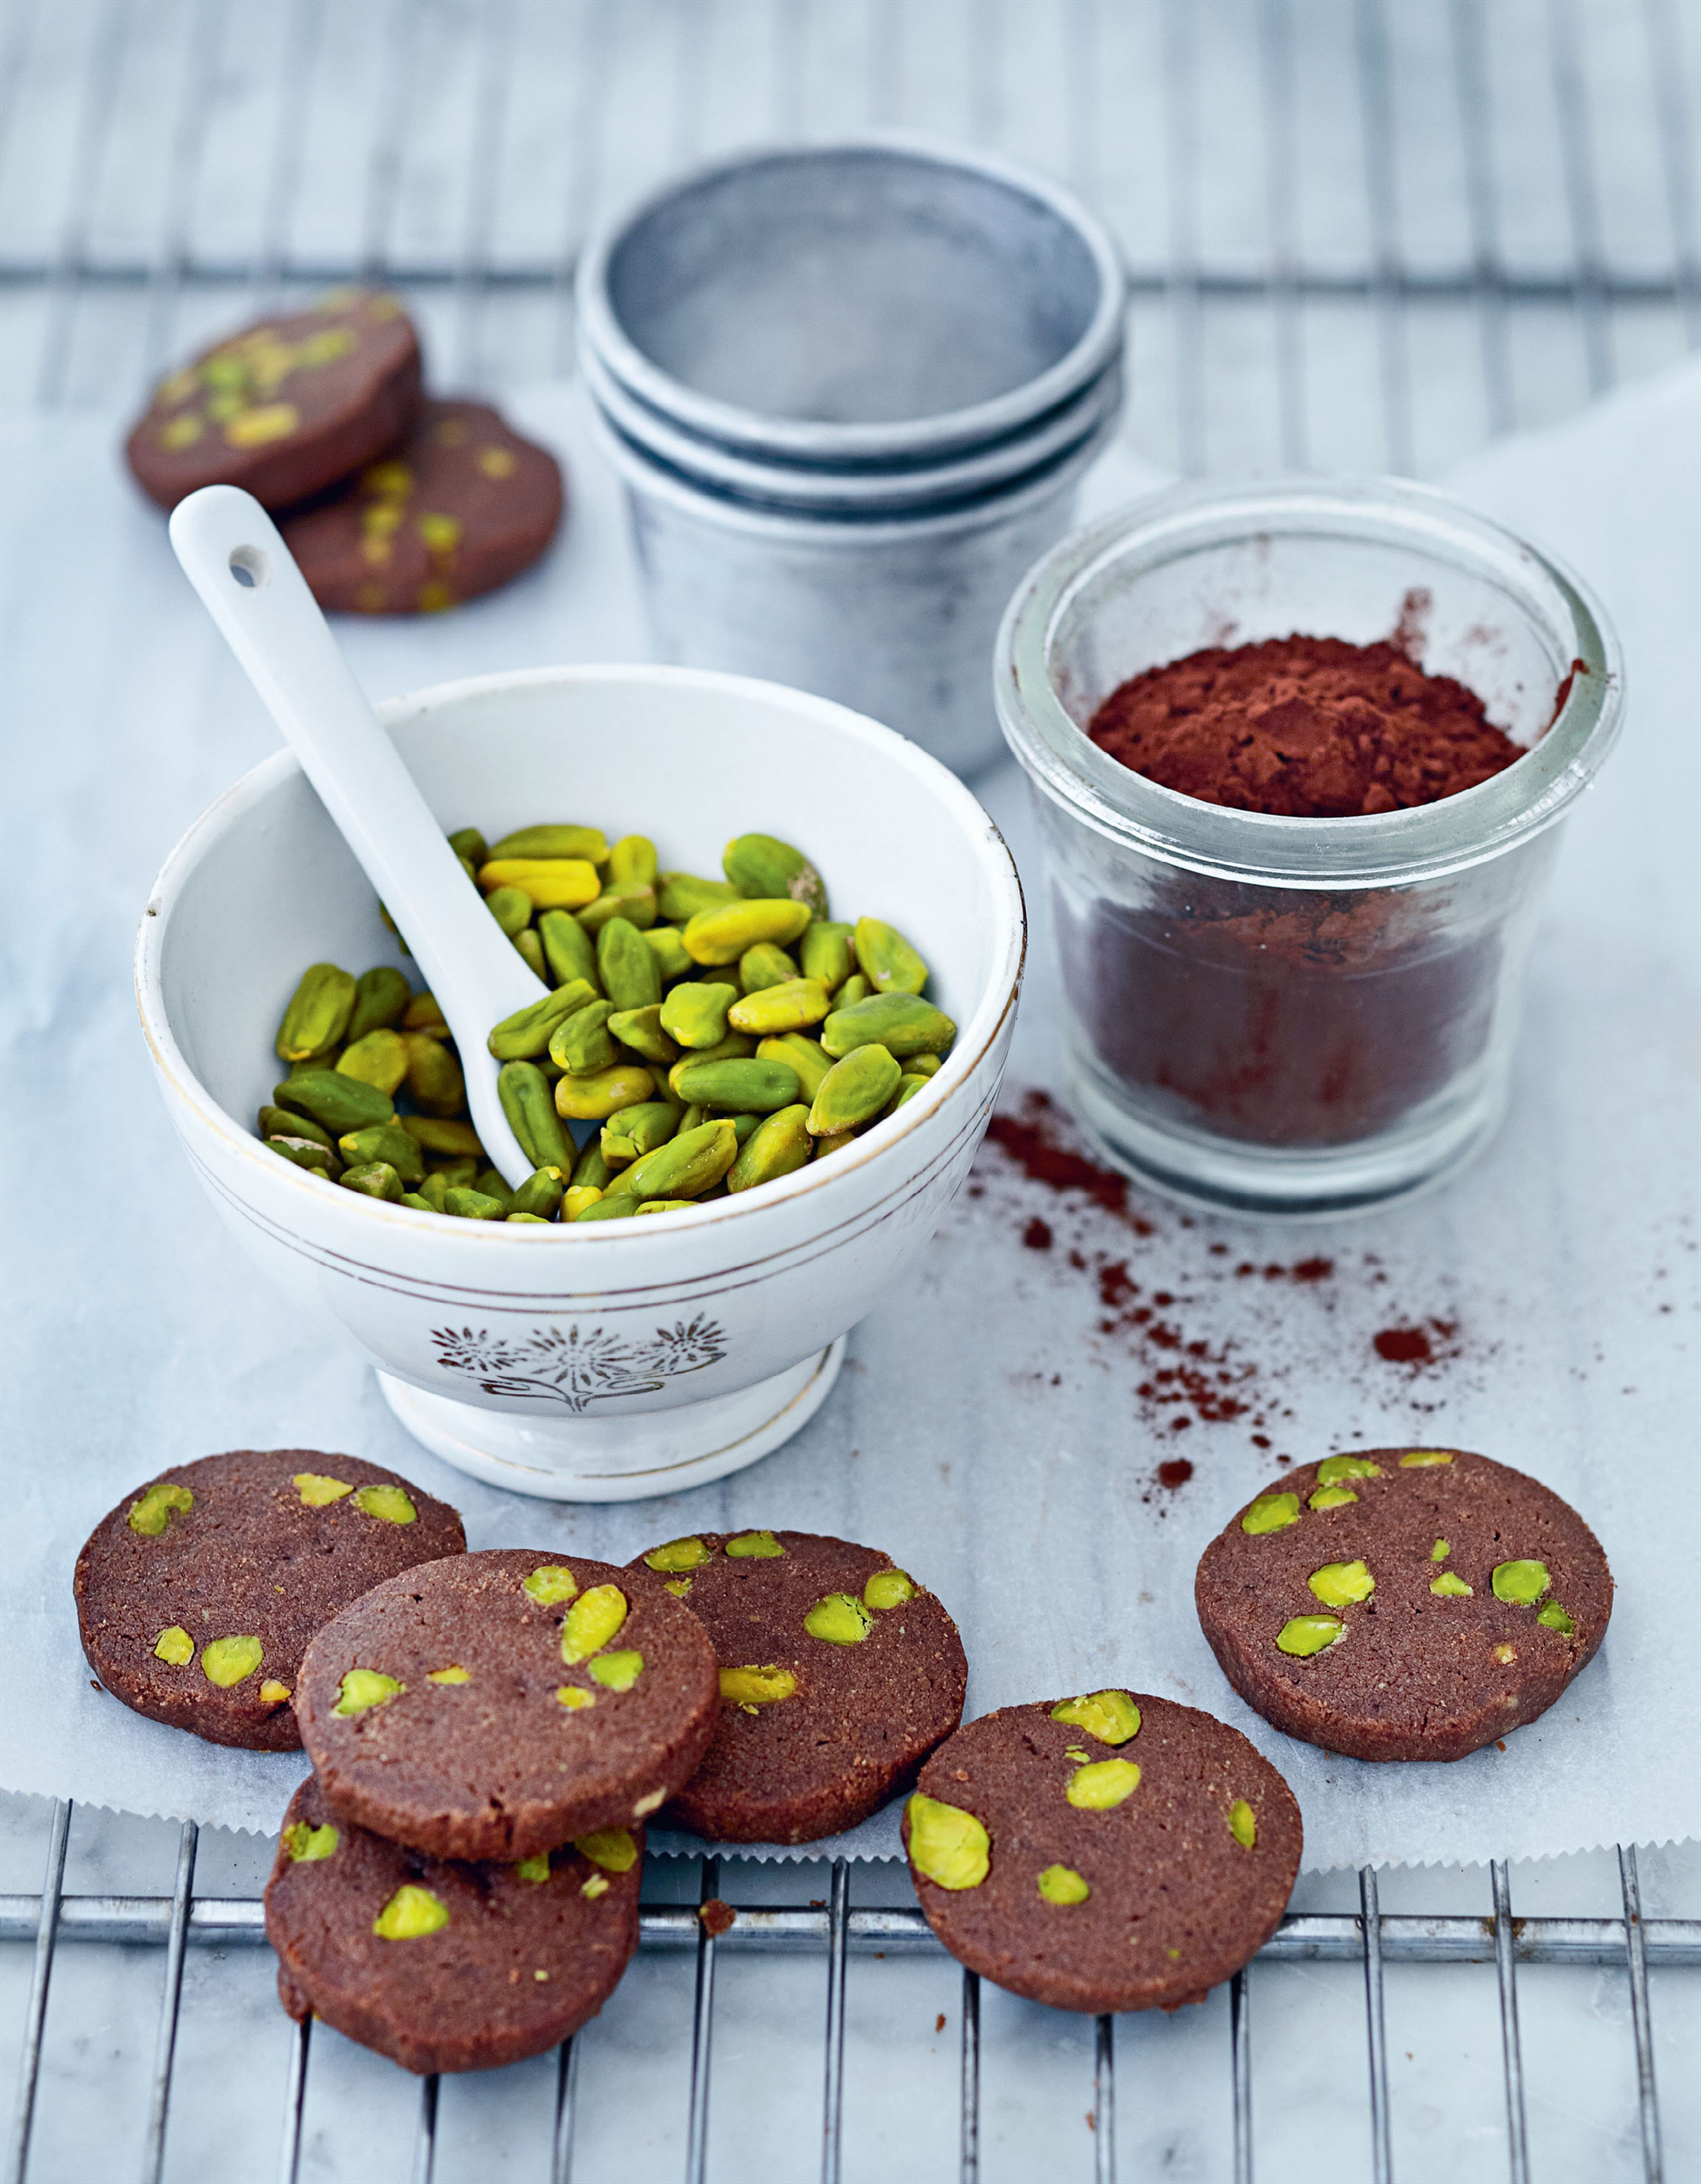 Chocolate–pistachio biscuits